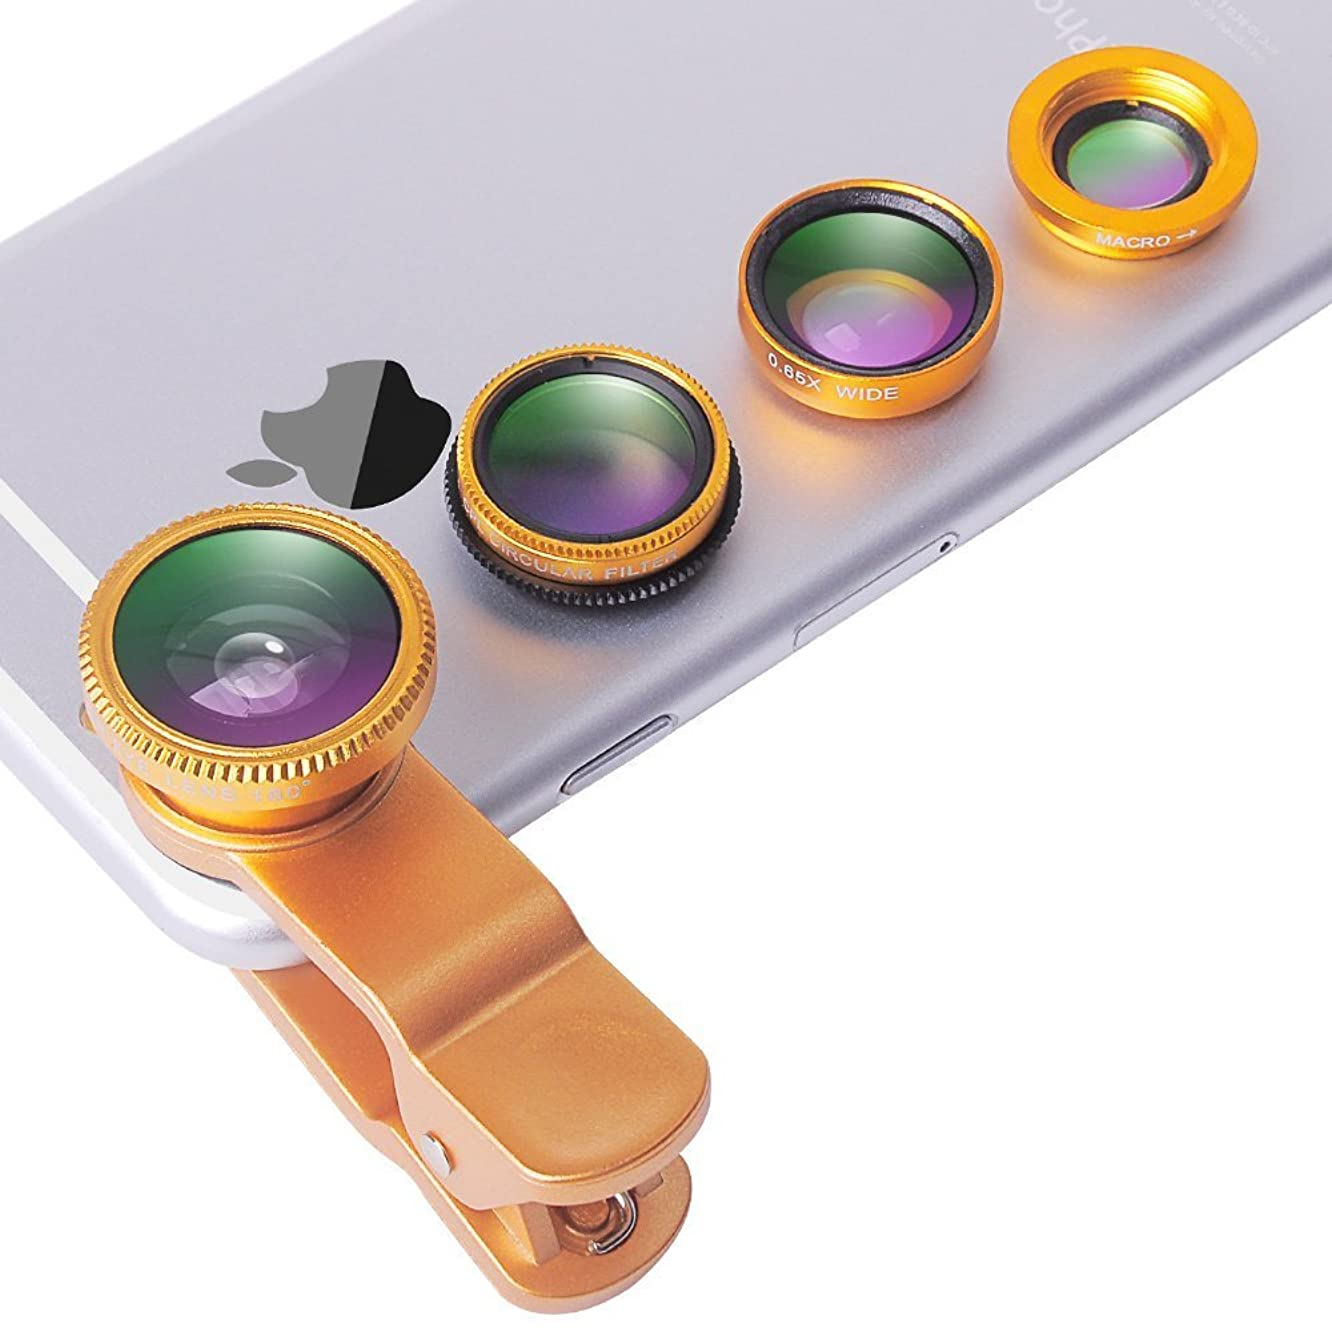 Evershop Universal 4 in 1 iPhone Camera Lens Kit Clip on Fish Eye Lens + 2 in 1 Macro Lens + Wide Angle Lens + CPL Lens Camera Lens Kit for Smart Phones (Gold)